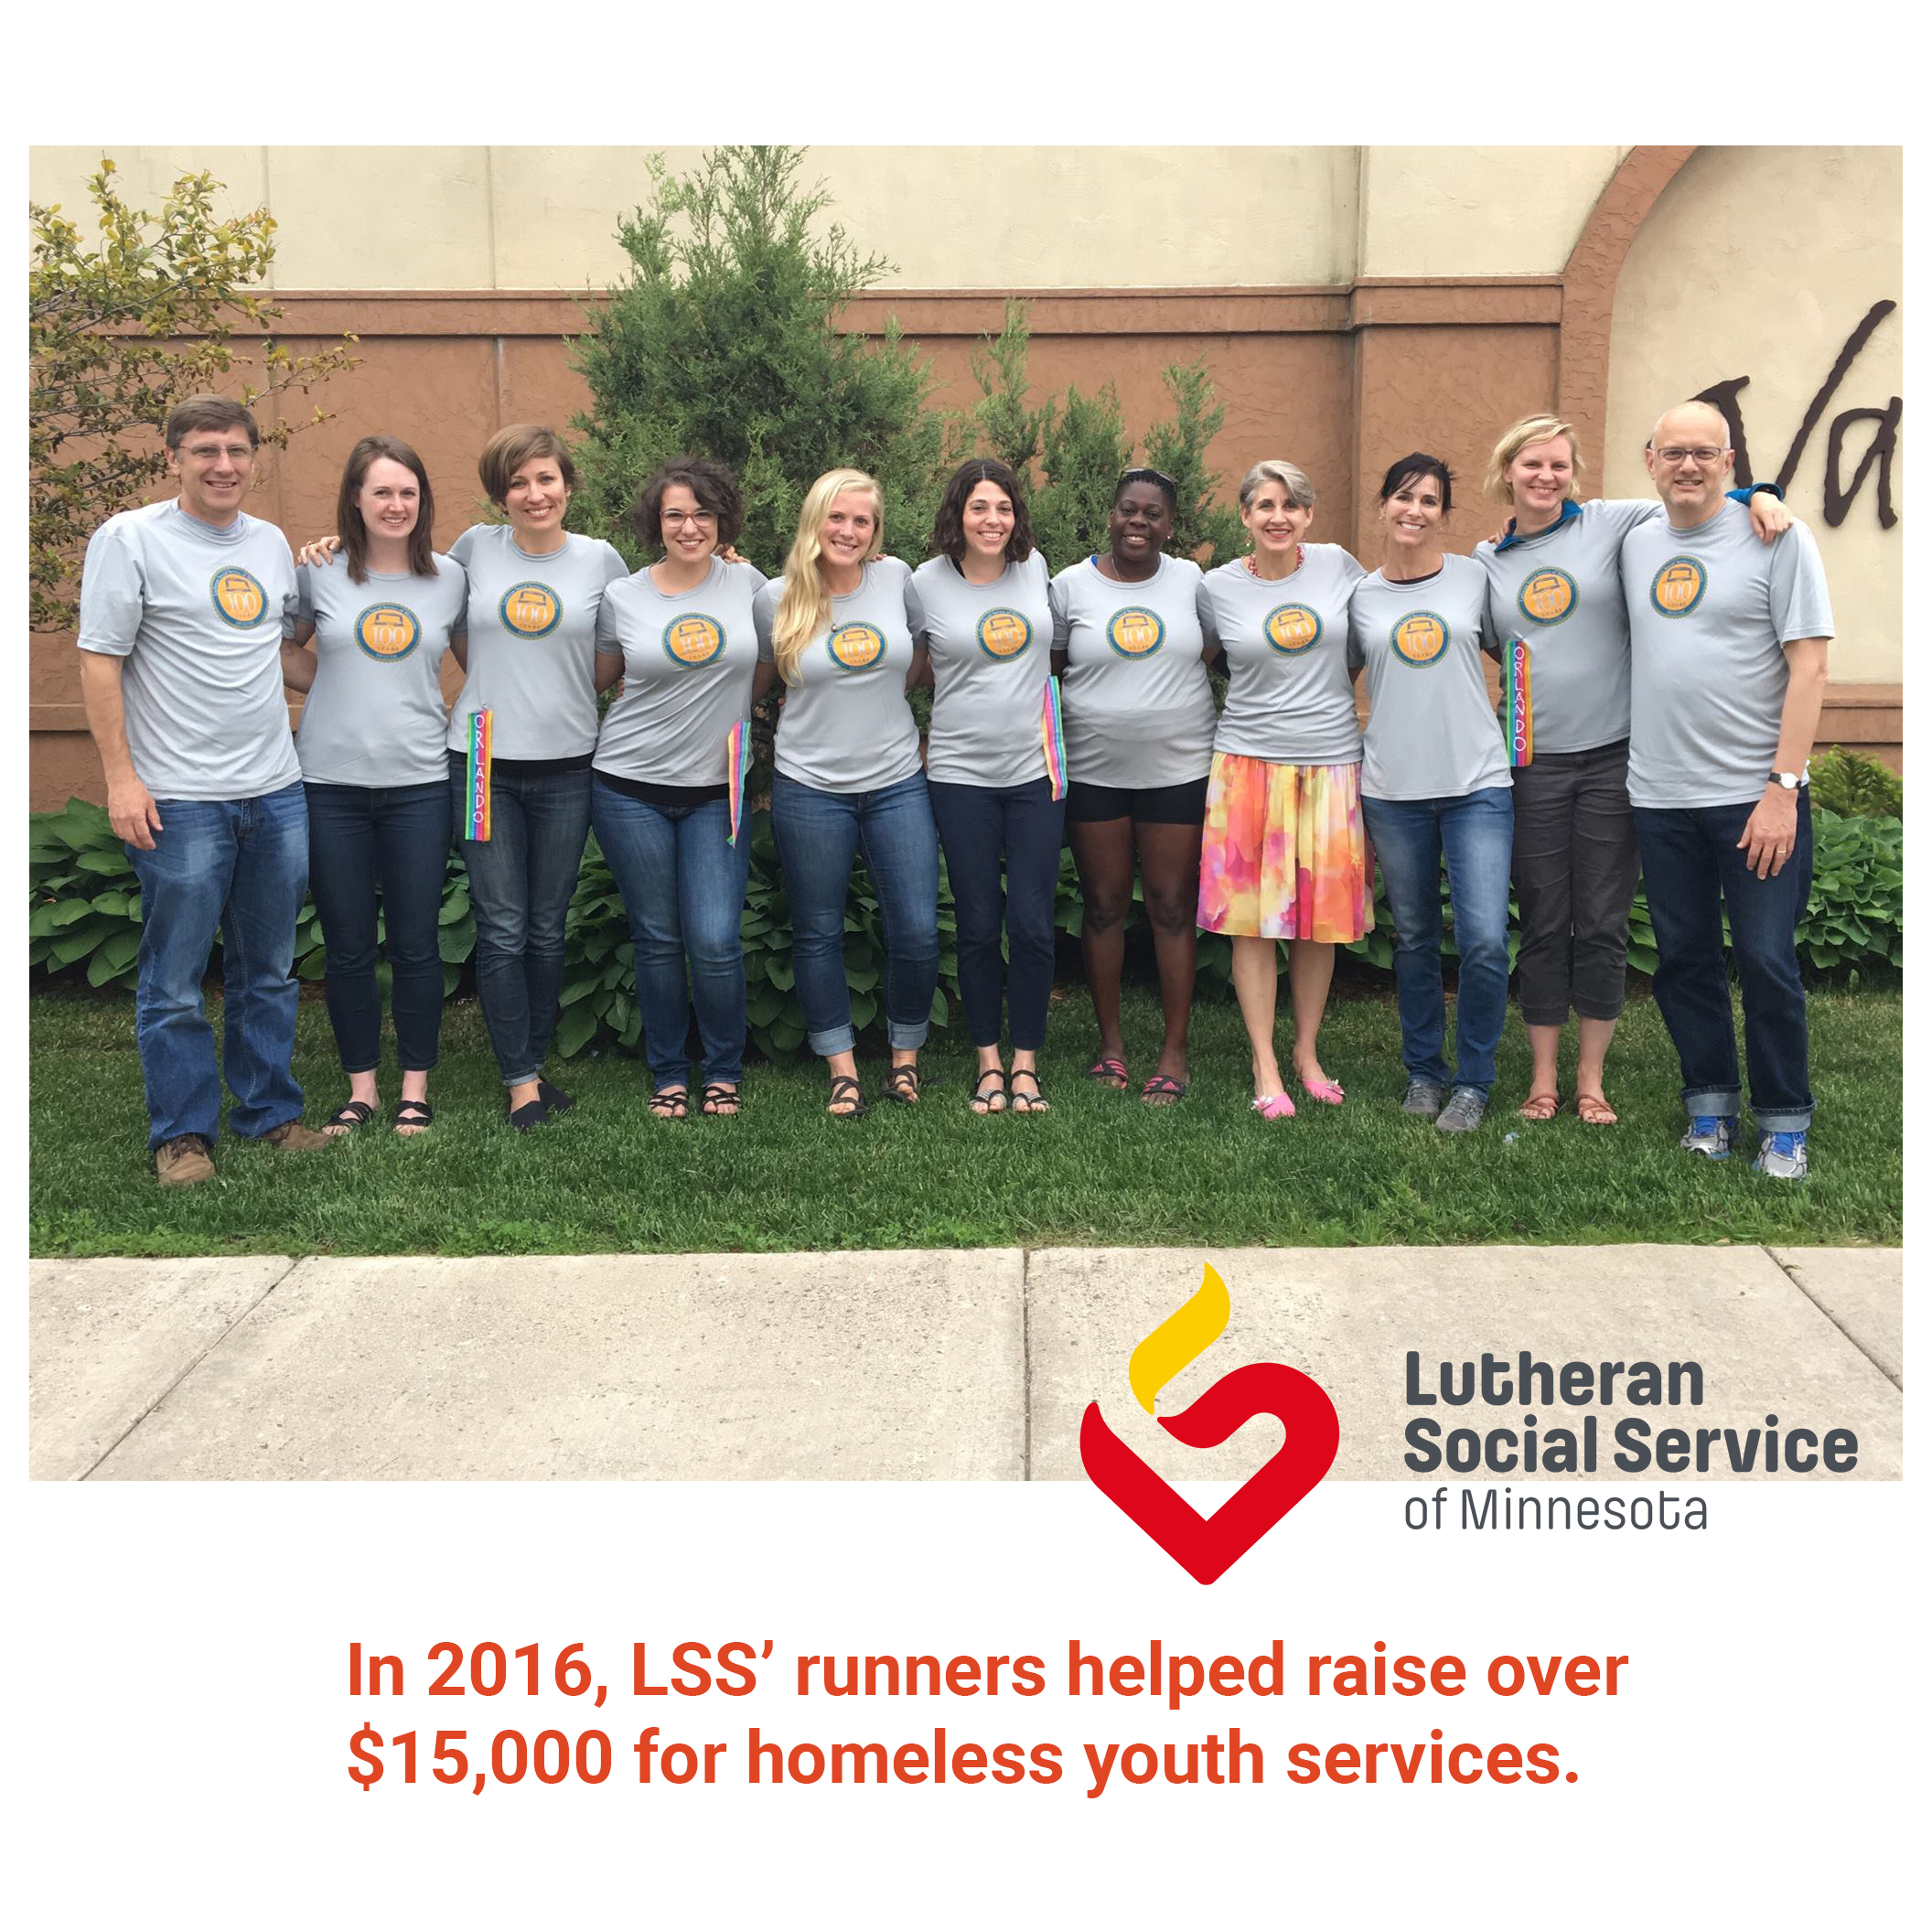 Lutheran Social Service of Minnesota's Photo